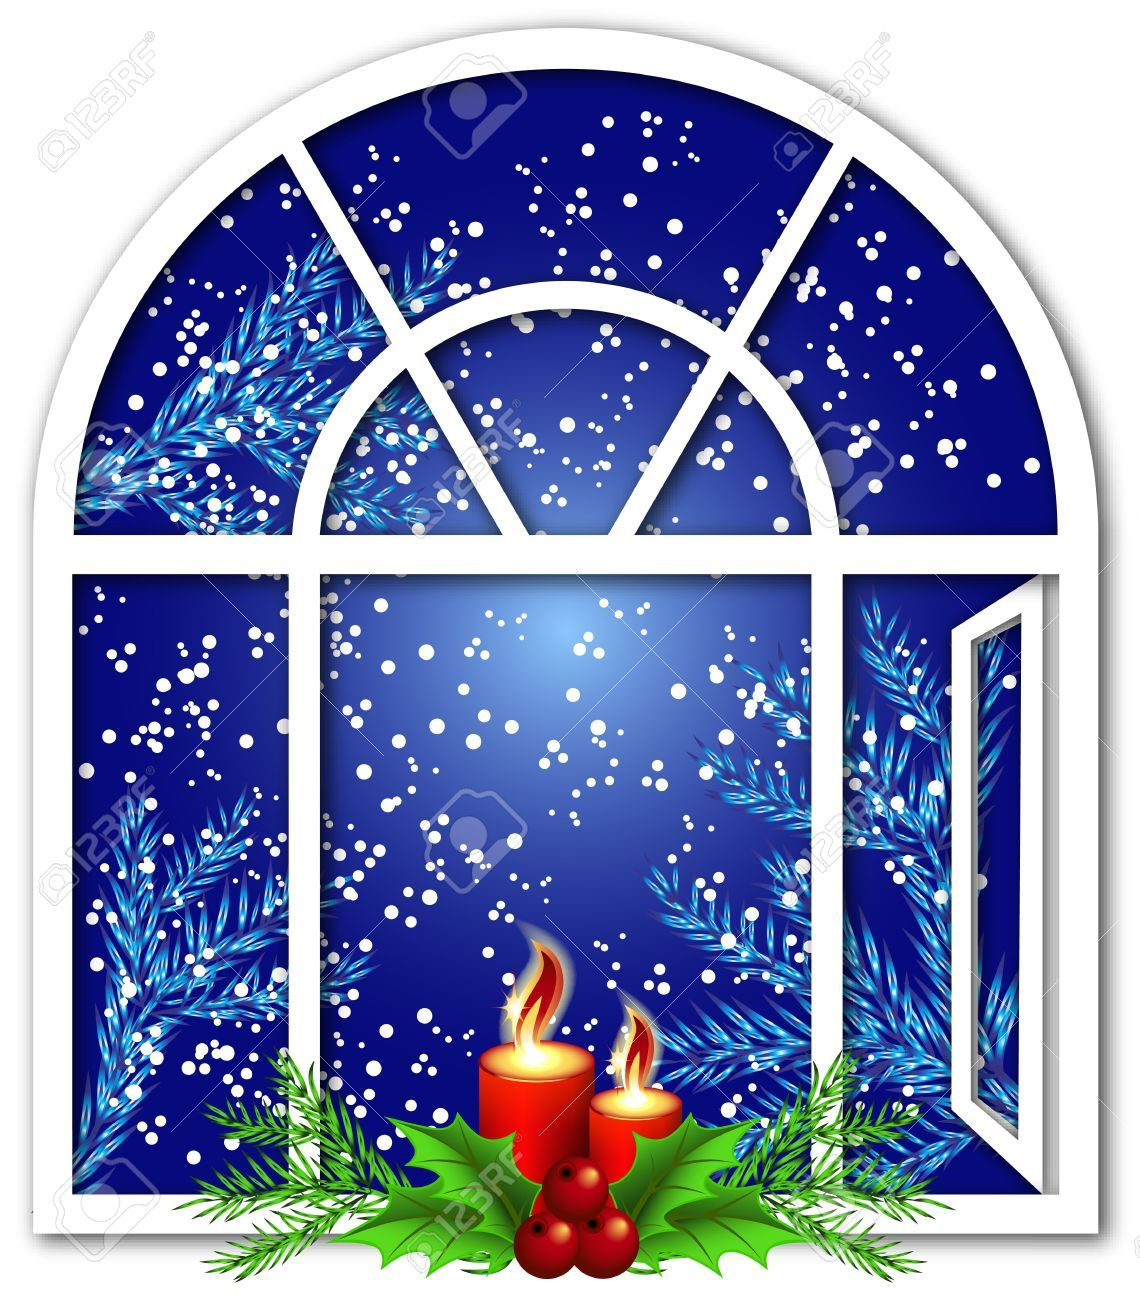 Windows christmas clipart 7 » Clipart Portal.